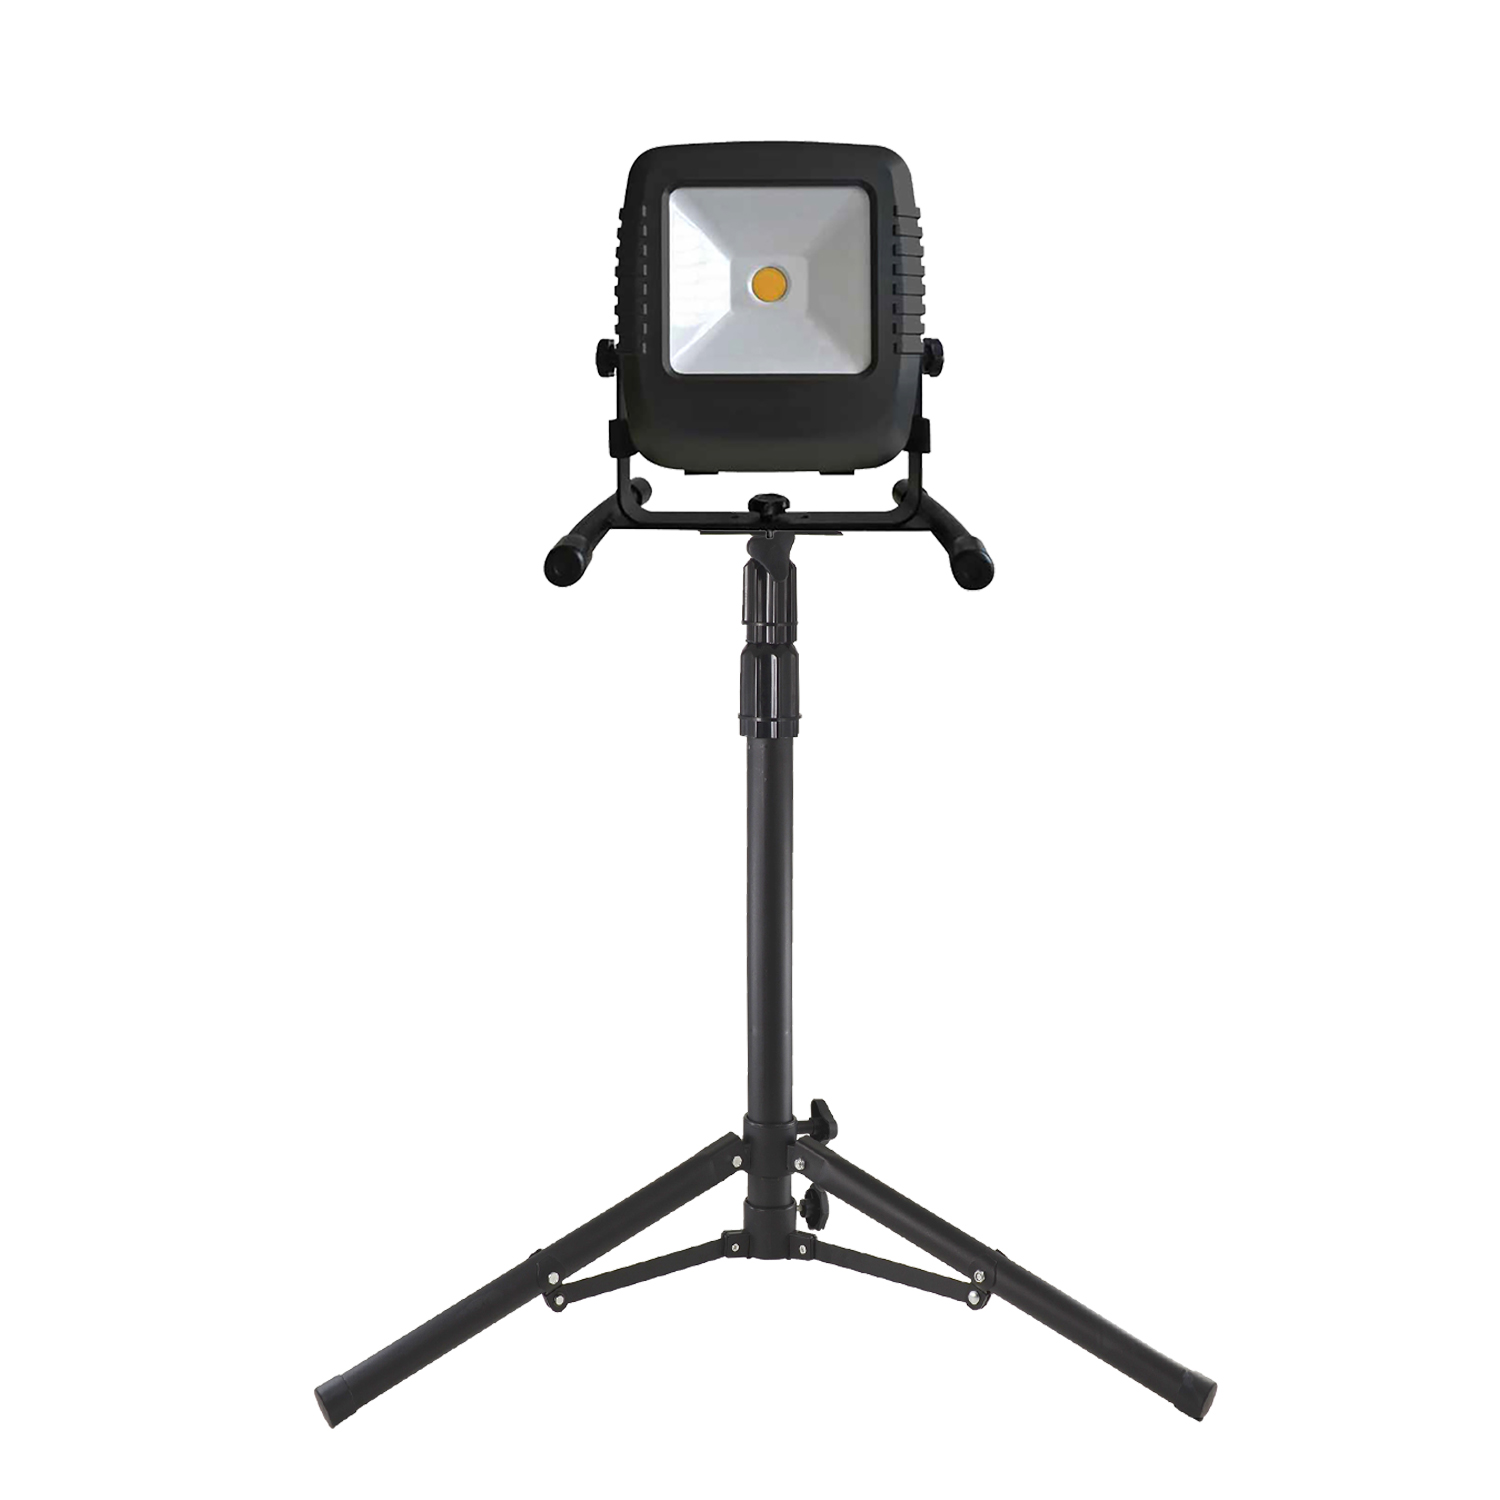 Stonepoint LED Lighting A4000TH-QRXD LED Large Dual Purpose Work Light with Heavy Duty Quick Release Tripod & H Stand